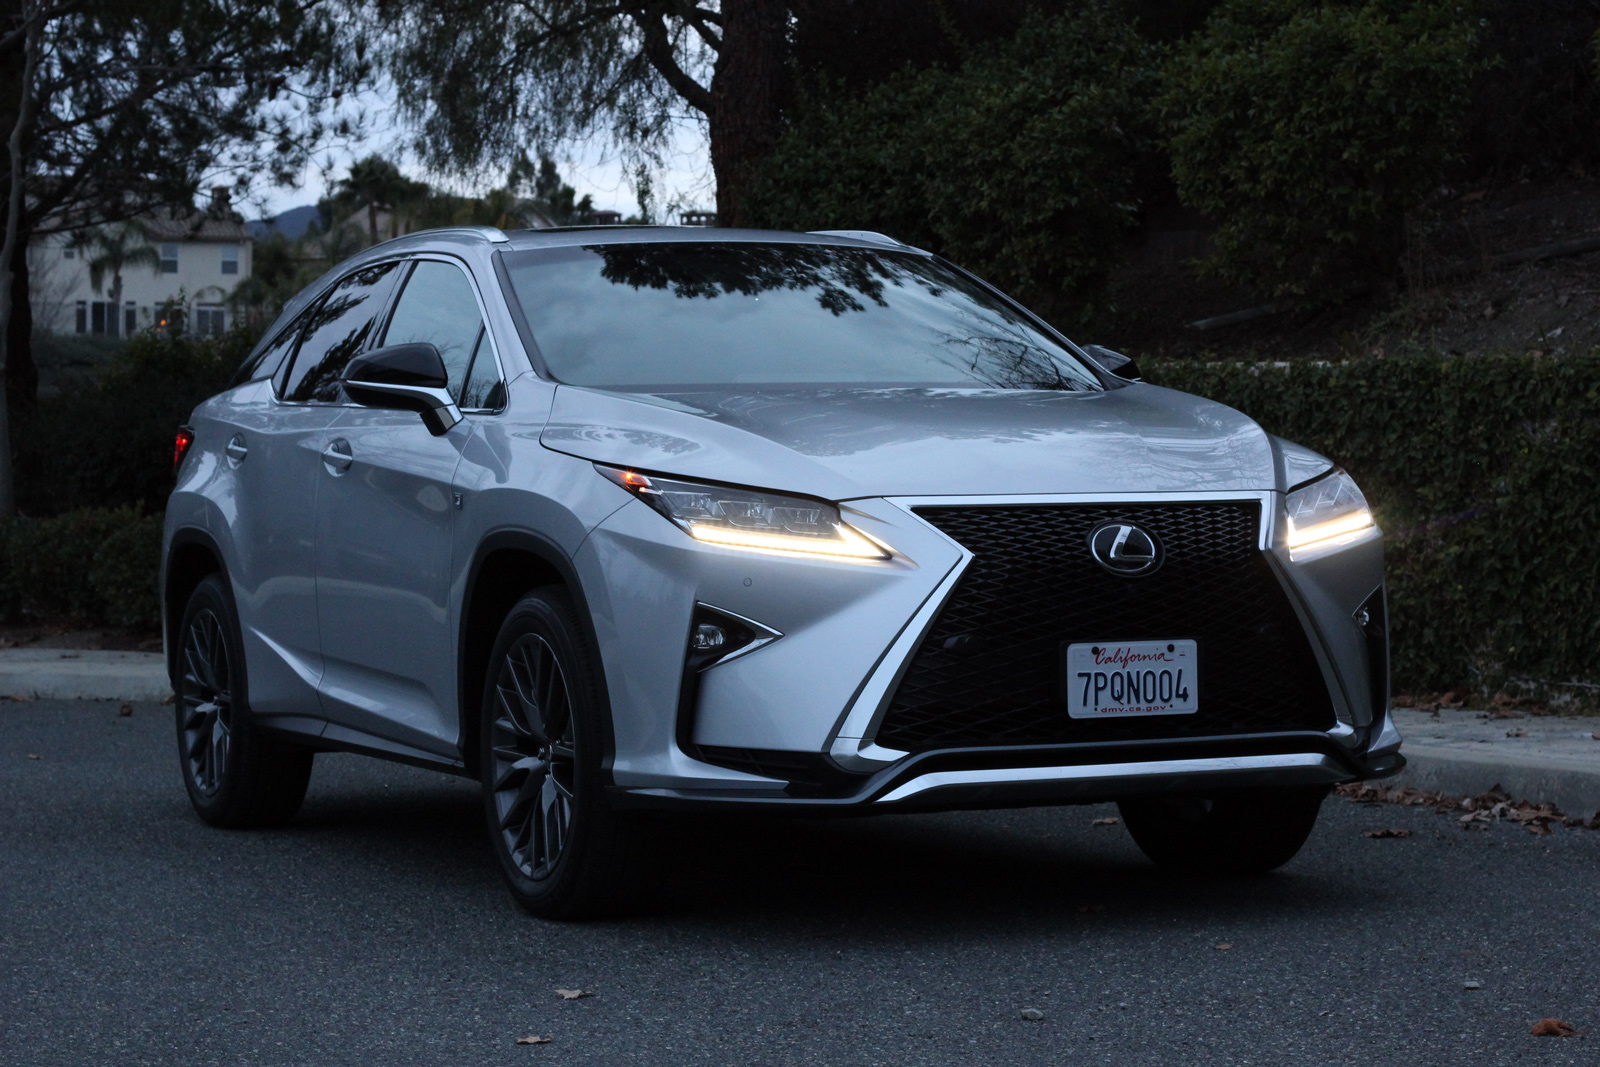 2016 lexus rx 350 f sport review tmr zoo. Black Bedroom Furniture Sets. Home Design Ideas